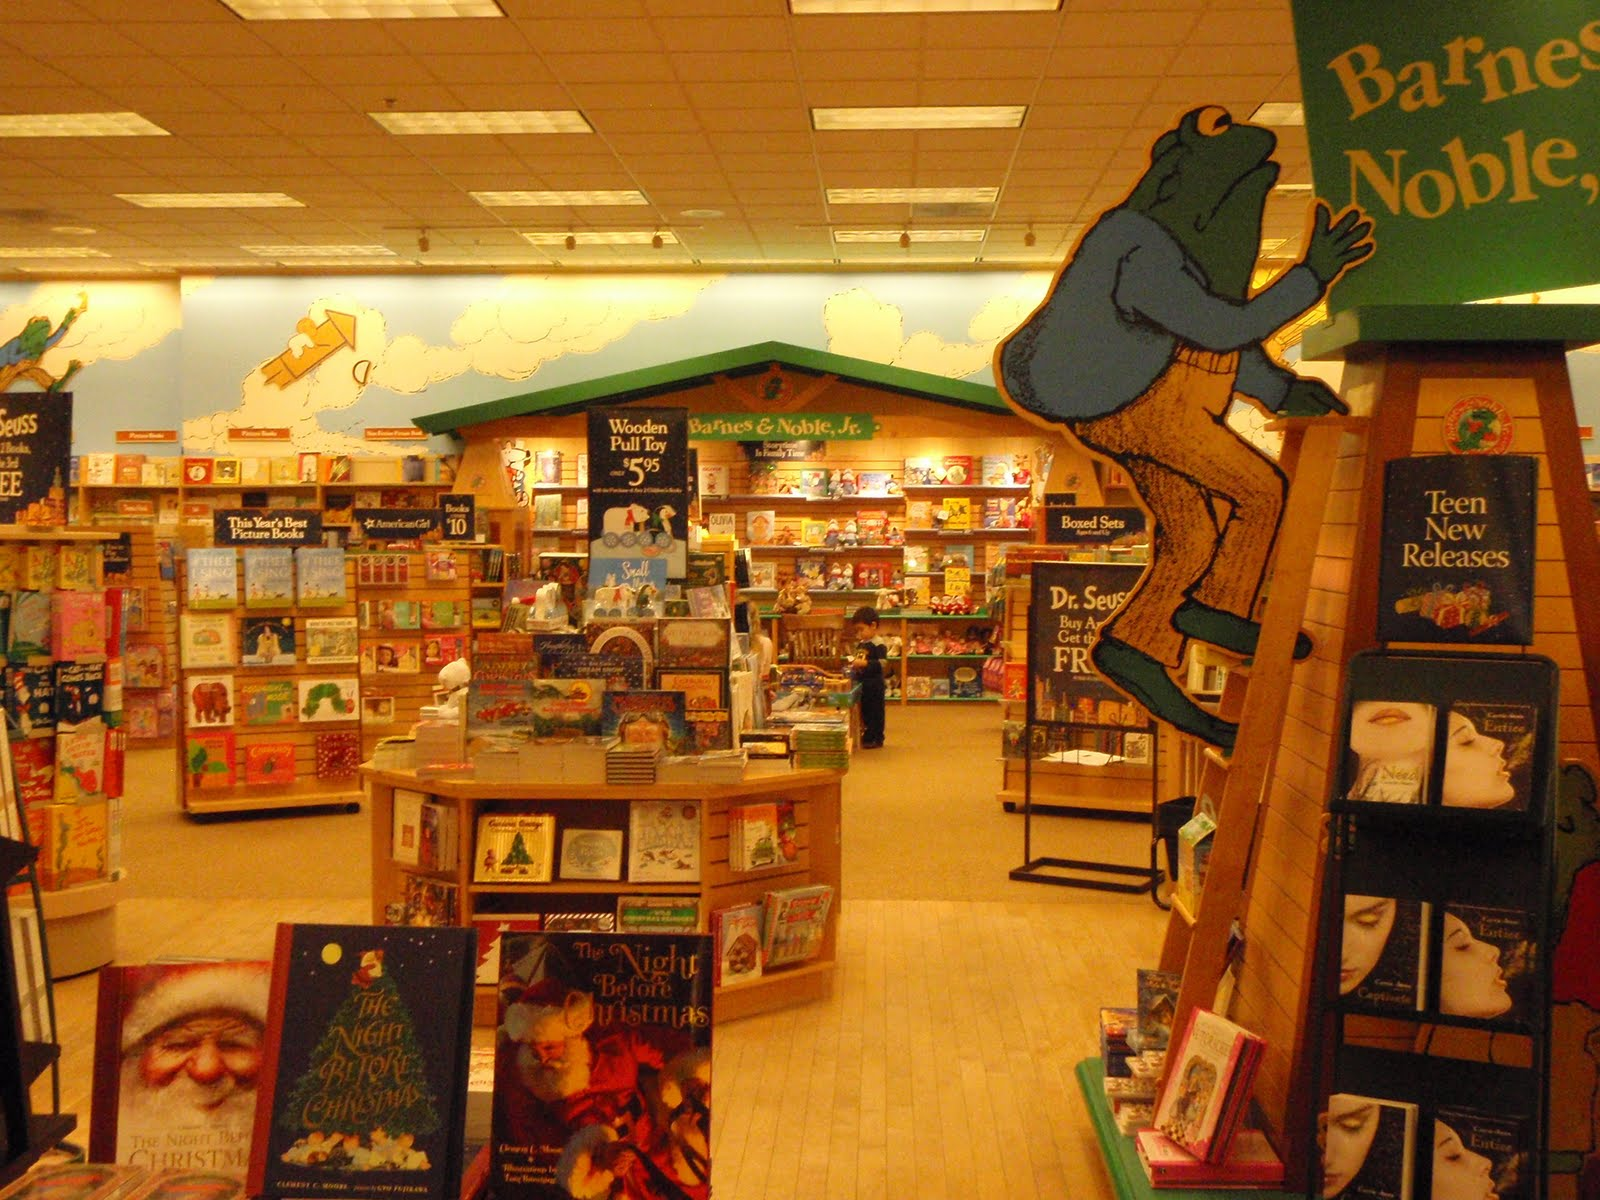 great book rubin books for young favorites recomendations kids literature gretchen adult childrens and barnes noble barns